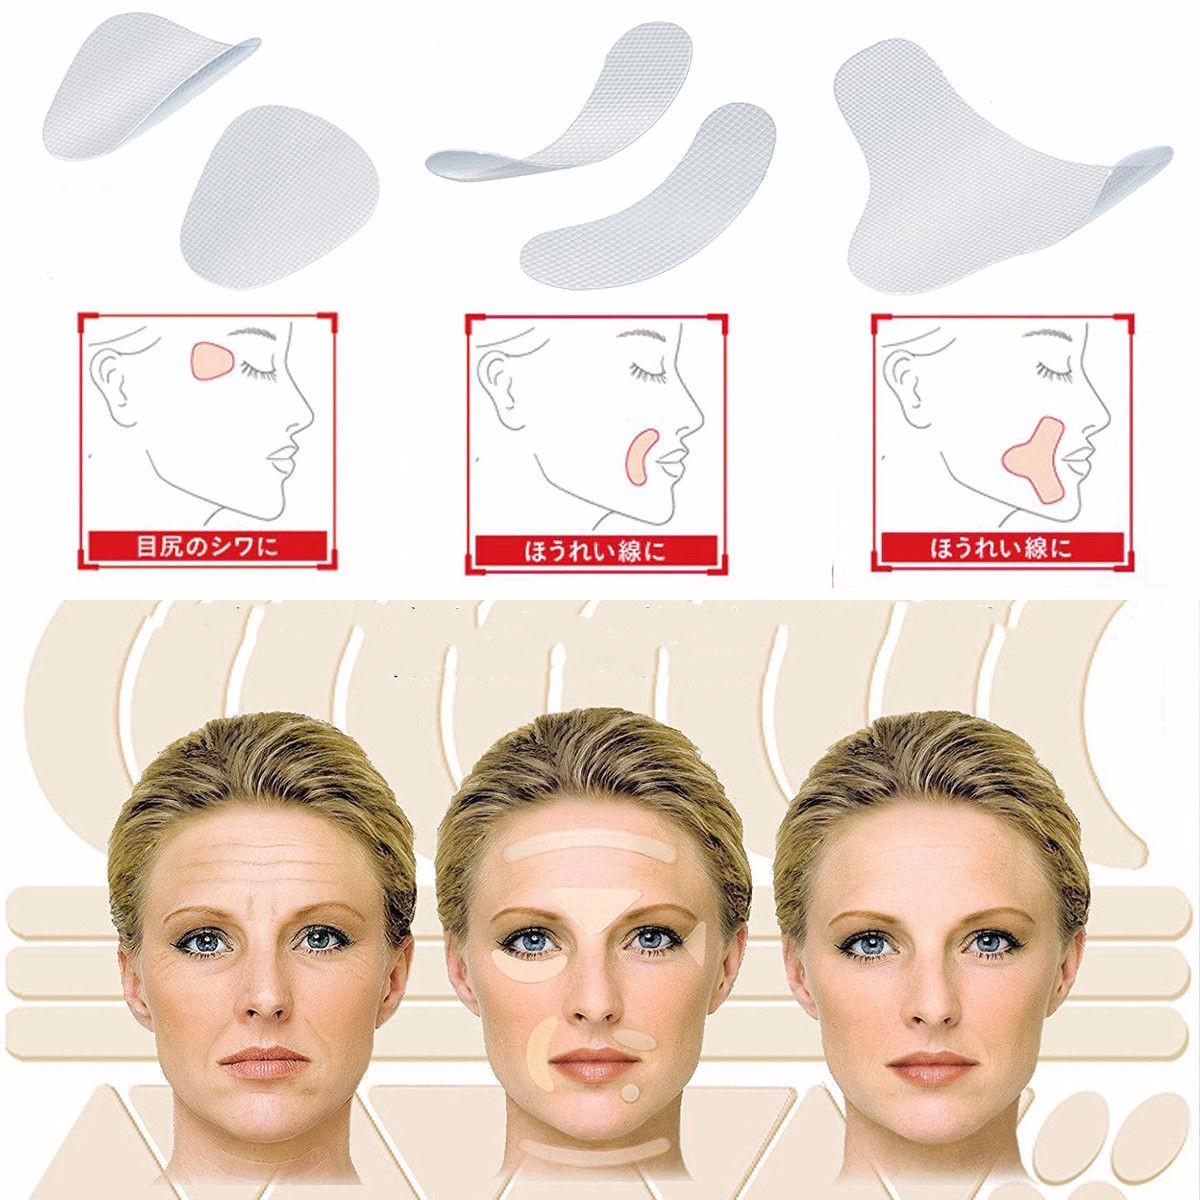 Women Facial Line Wrinkle Sagging Skin Lift Up Tape Frown Smile Lines V-Shape Face Fast Lift Up Makeup Face Wrinkle Remove ToolsWomen Facial Line Wrinkle Sagging Skin Lift Up Tape Frown Smile Lines V-Shape Face Fast Lift Up Makeup Face Wrinkle Remove Tools